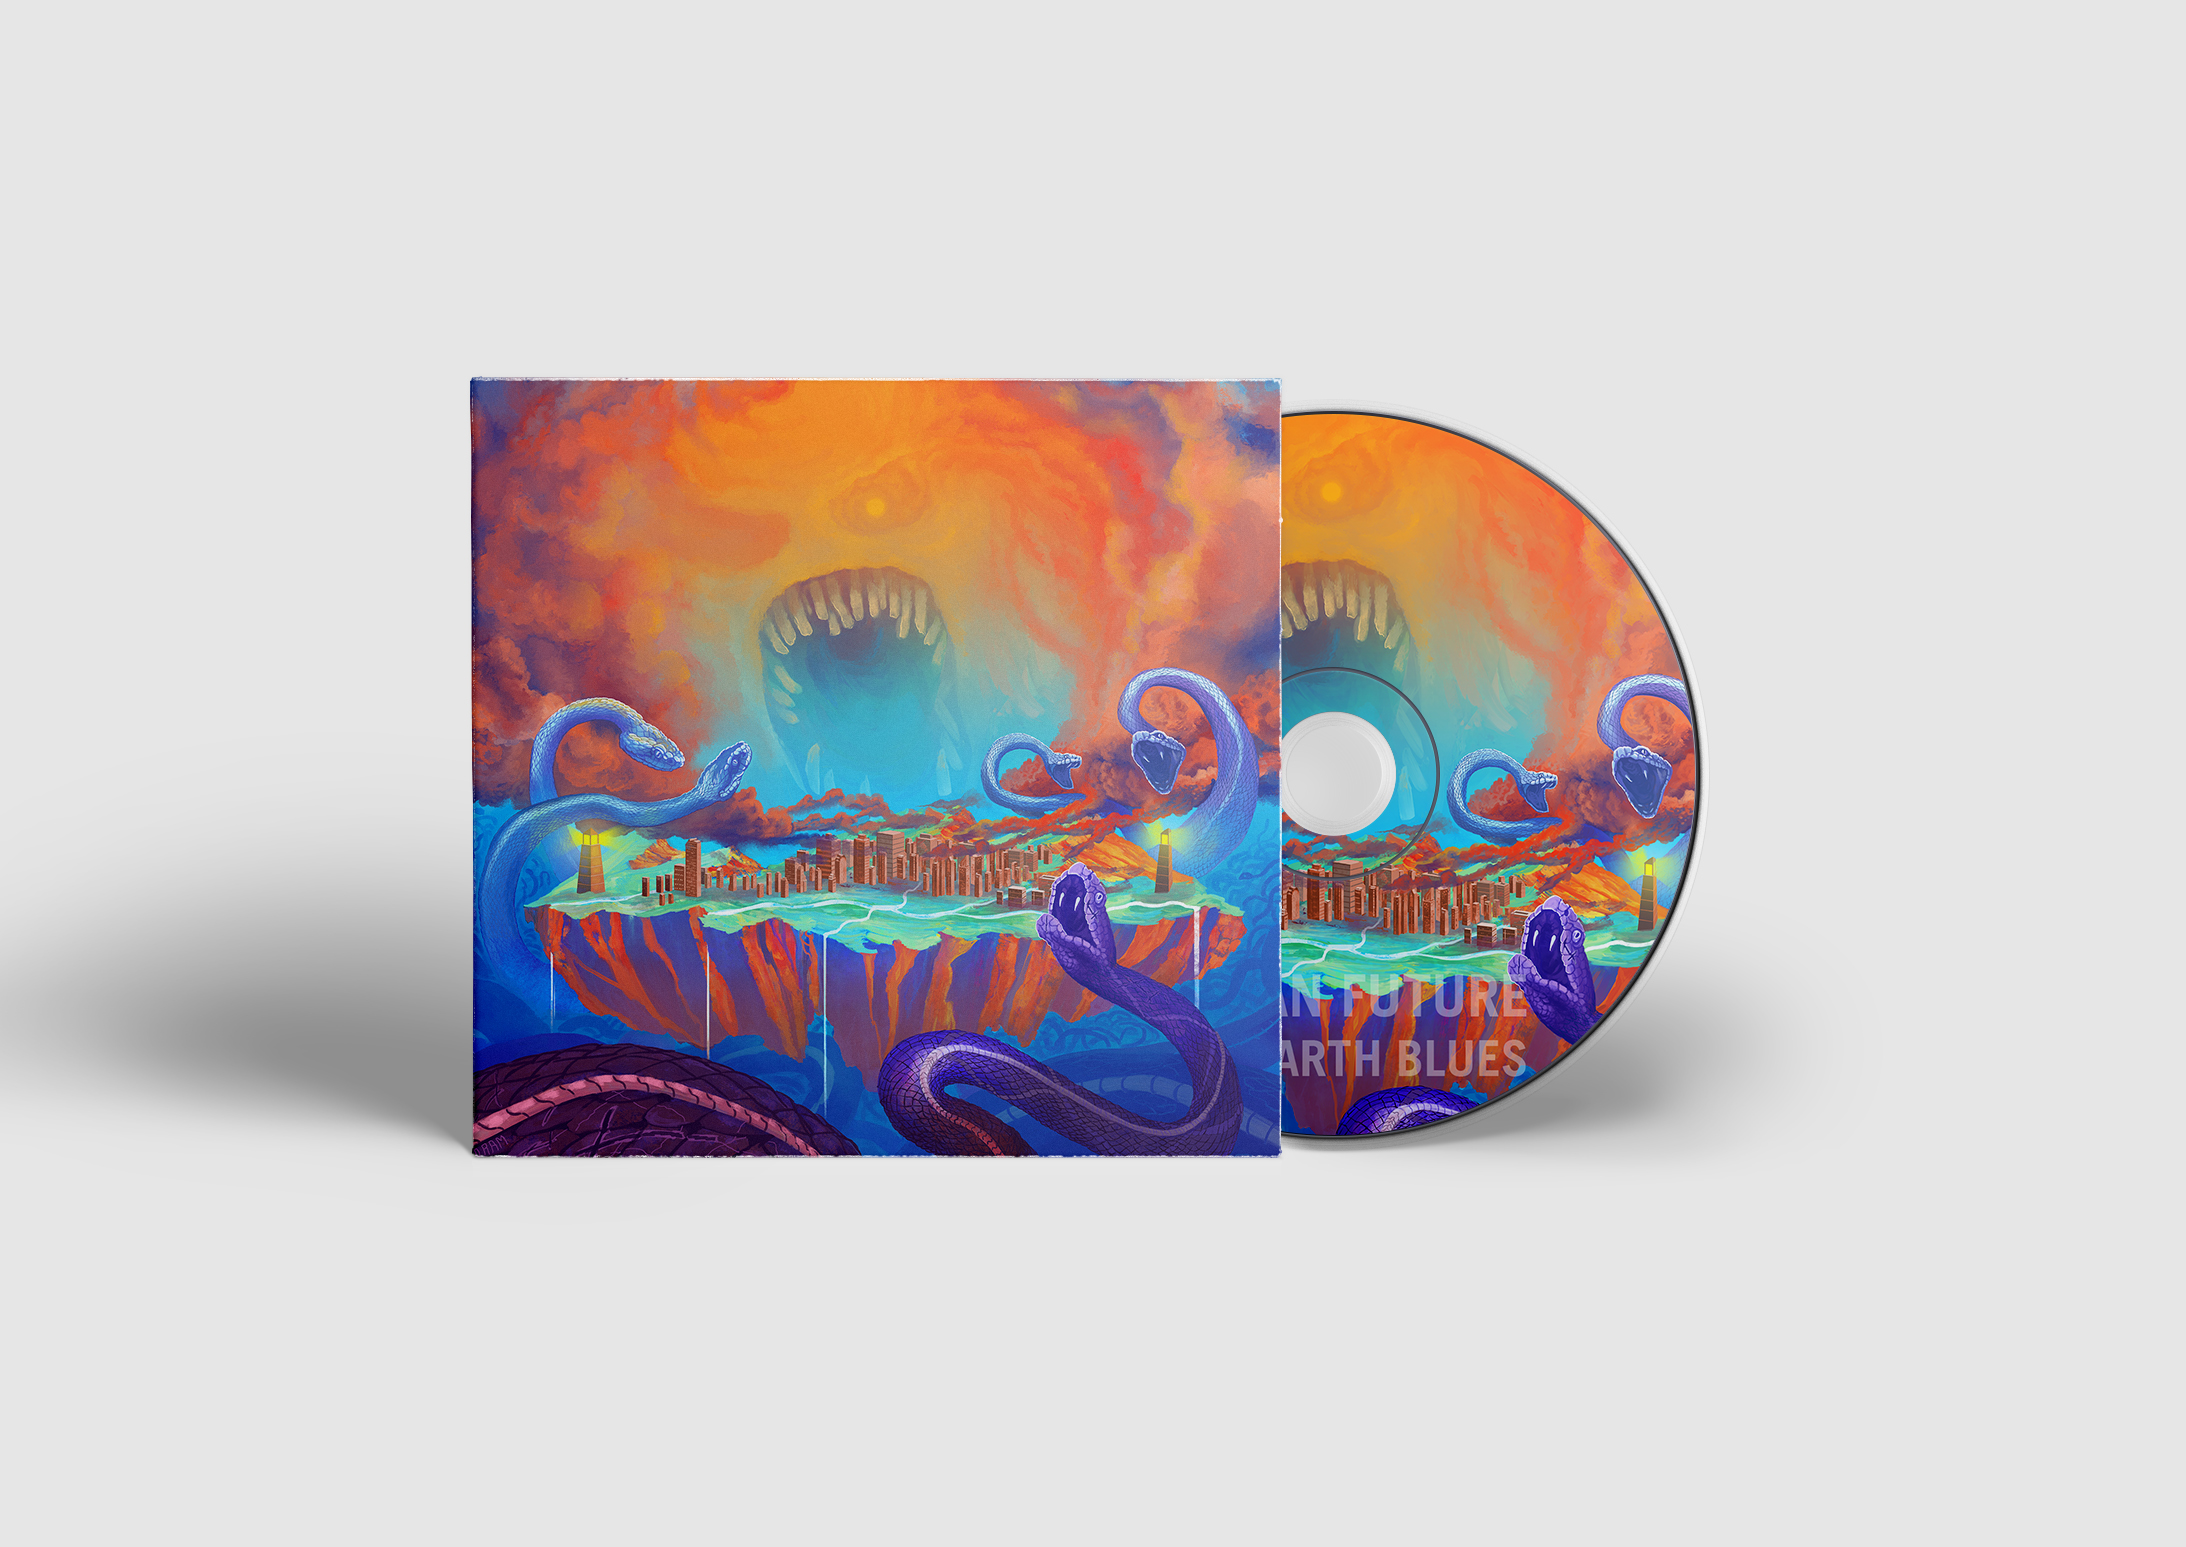 Human Future - Flat Earth Blues Digipak CD